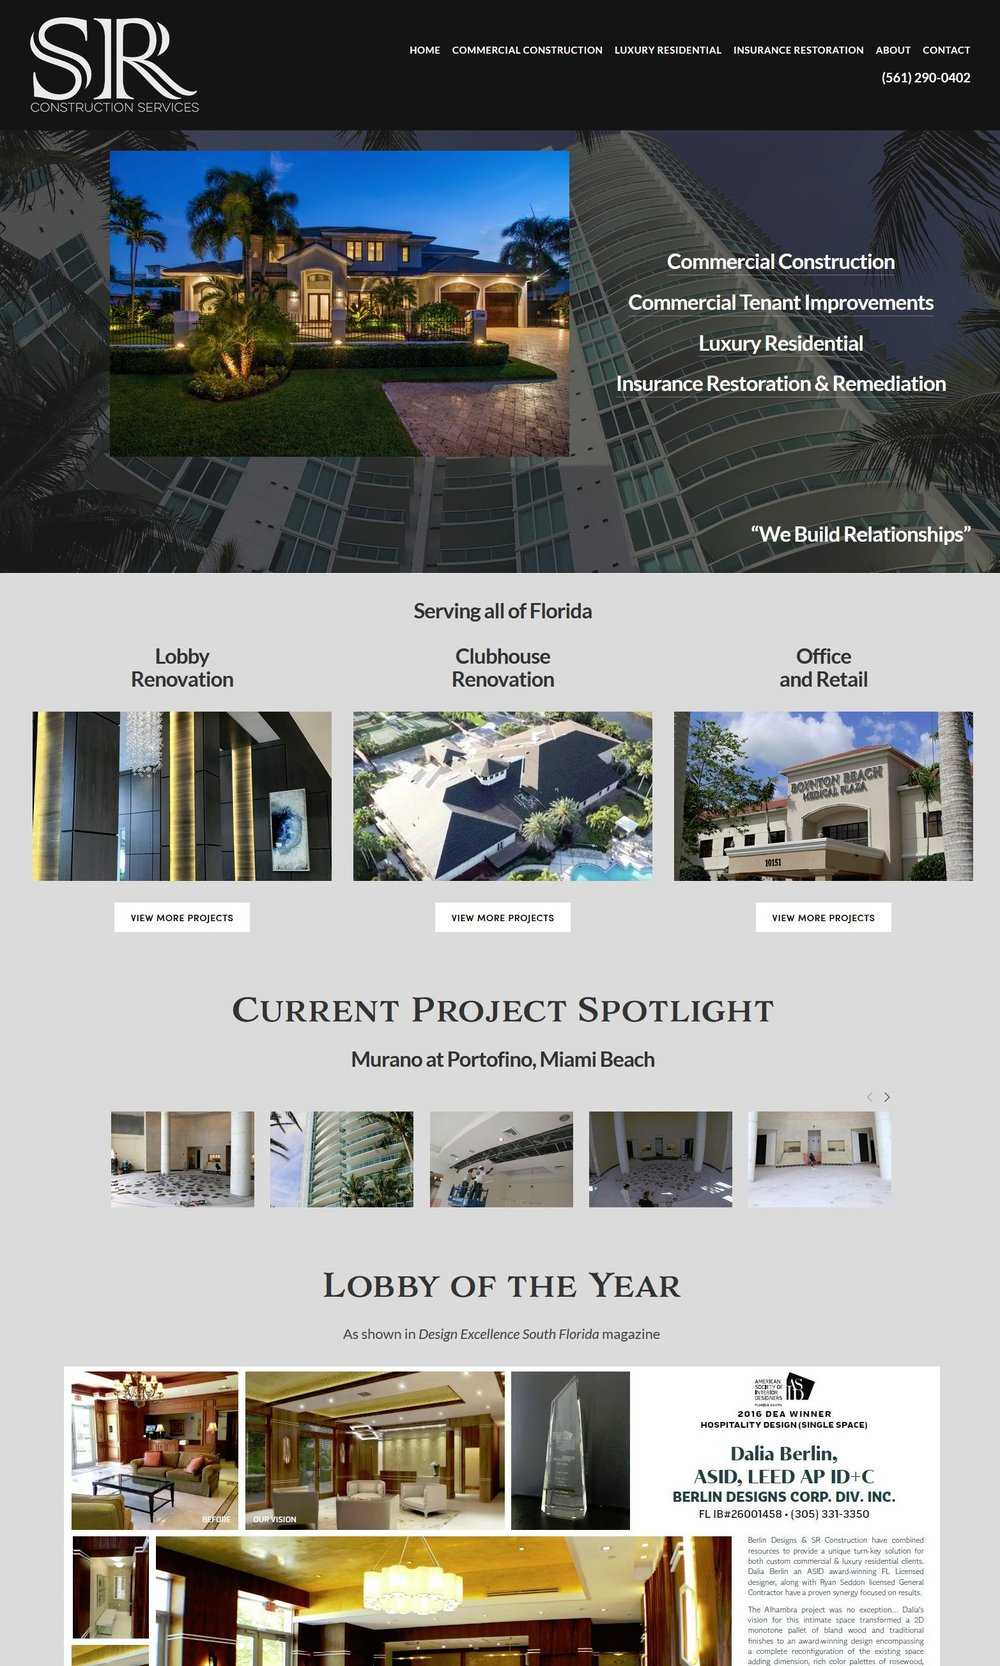 SR Construction home page